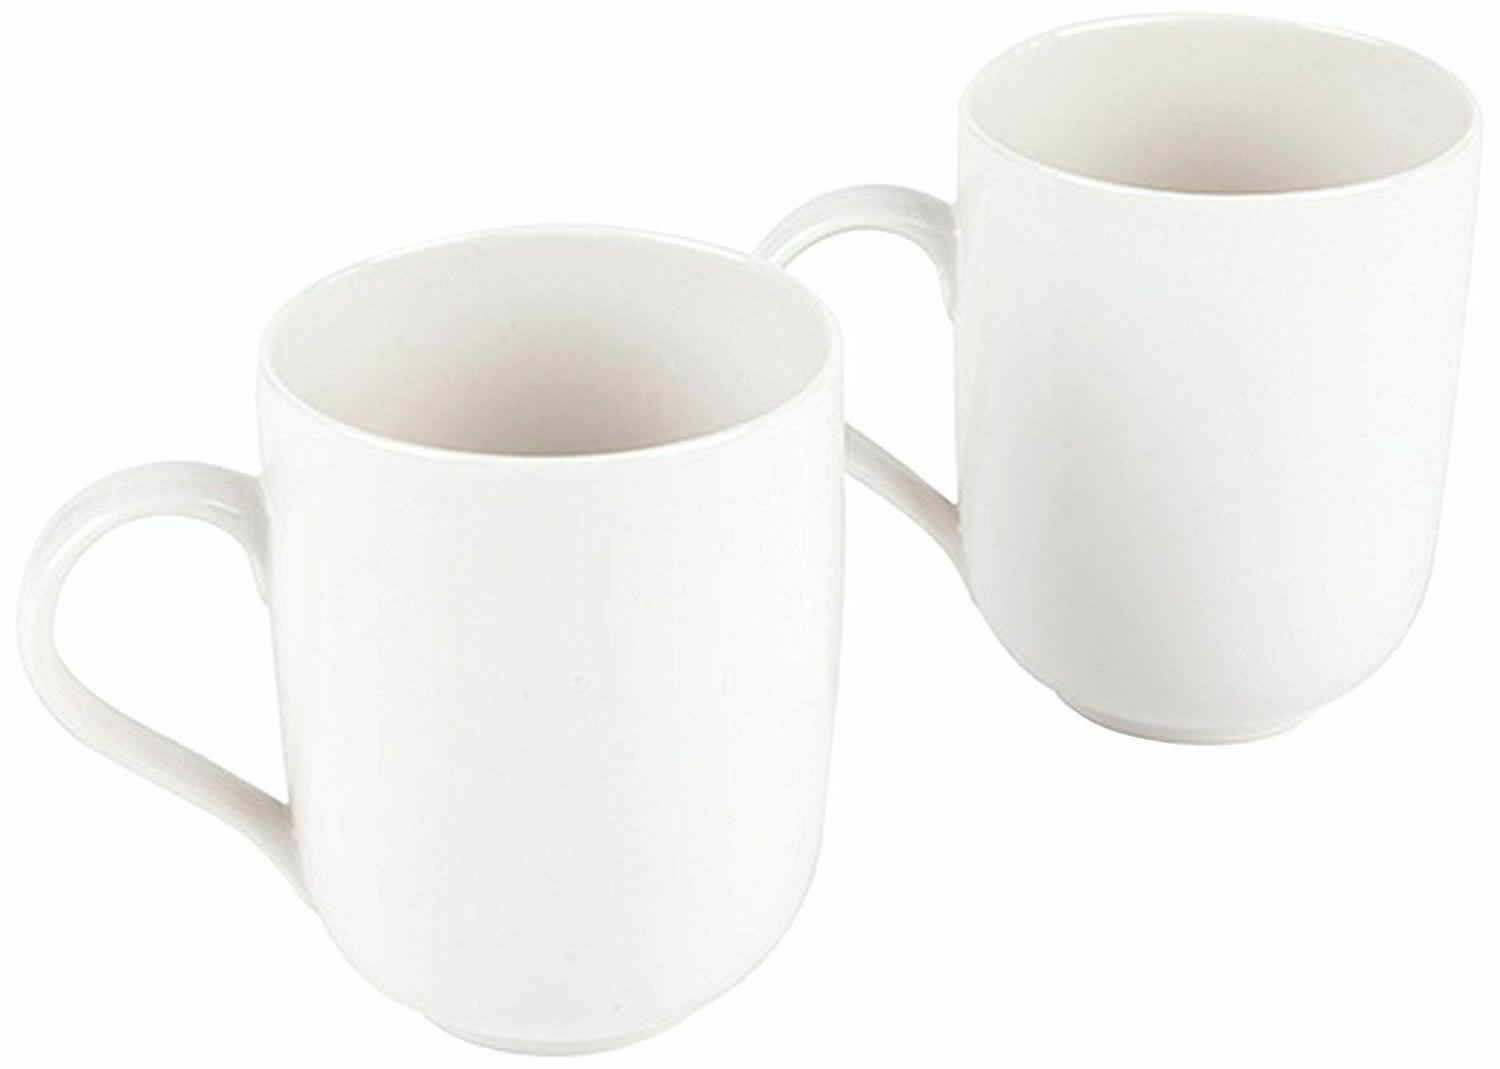 la bella tavola porcelain mugs off white